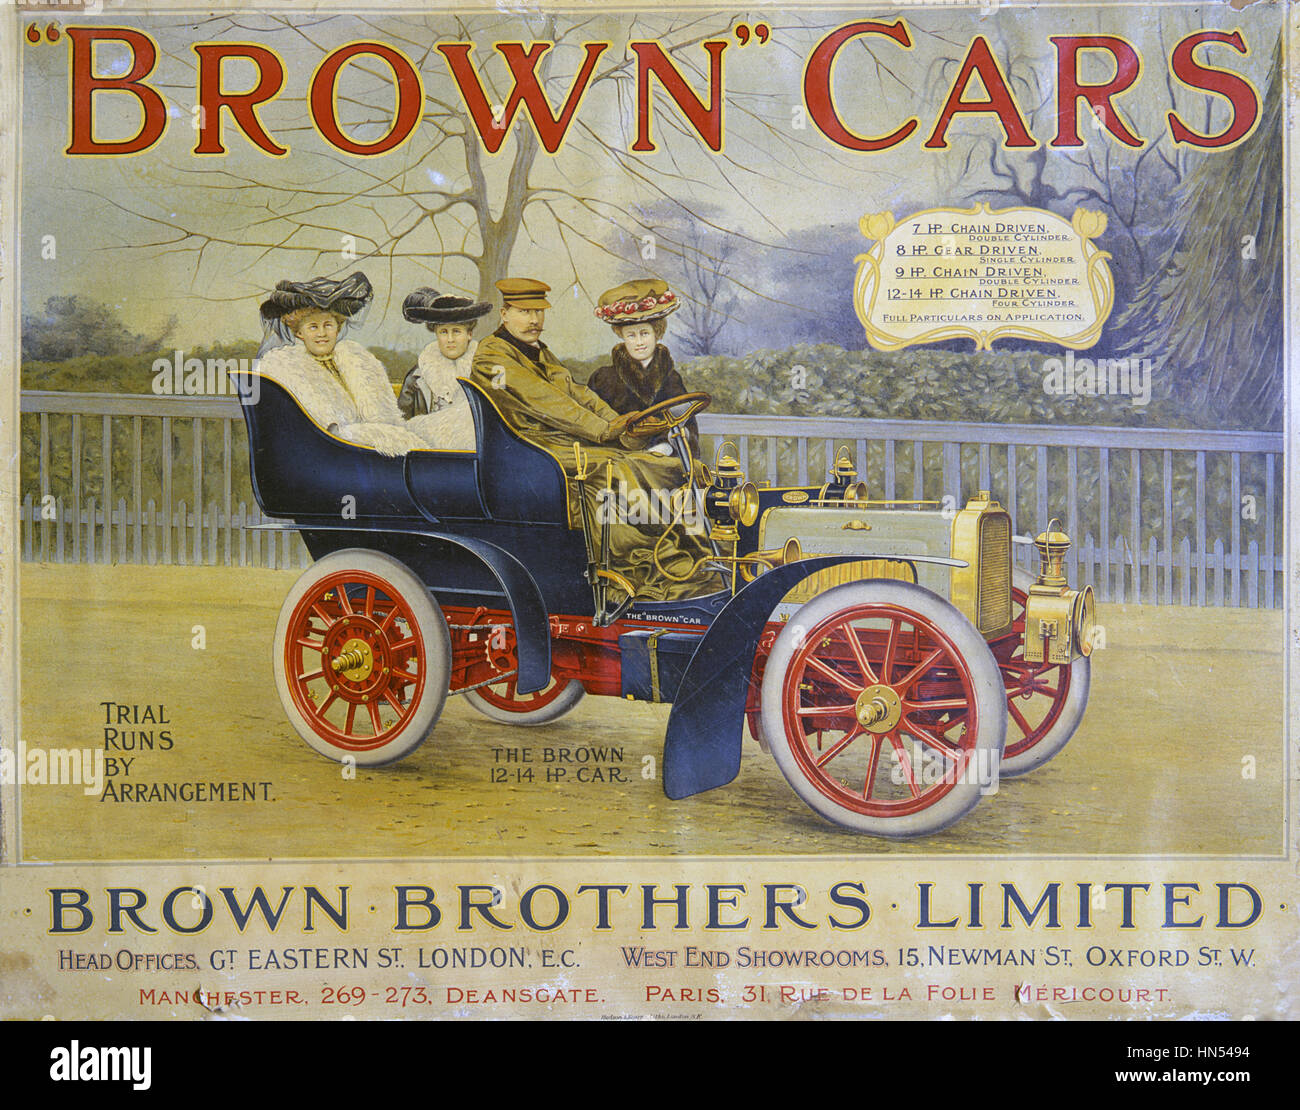 Brown Brothers Limited poster Photo Stock